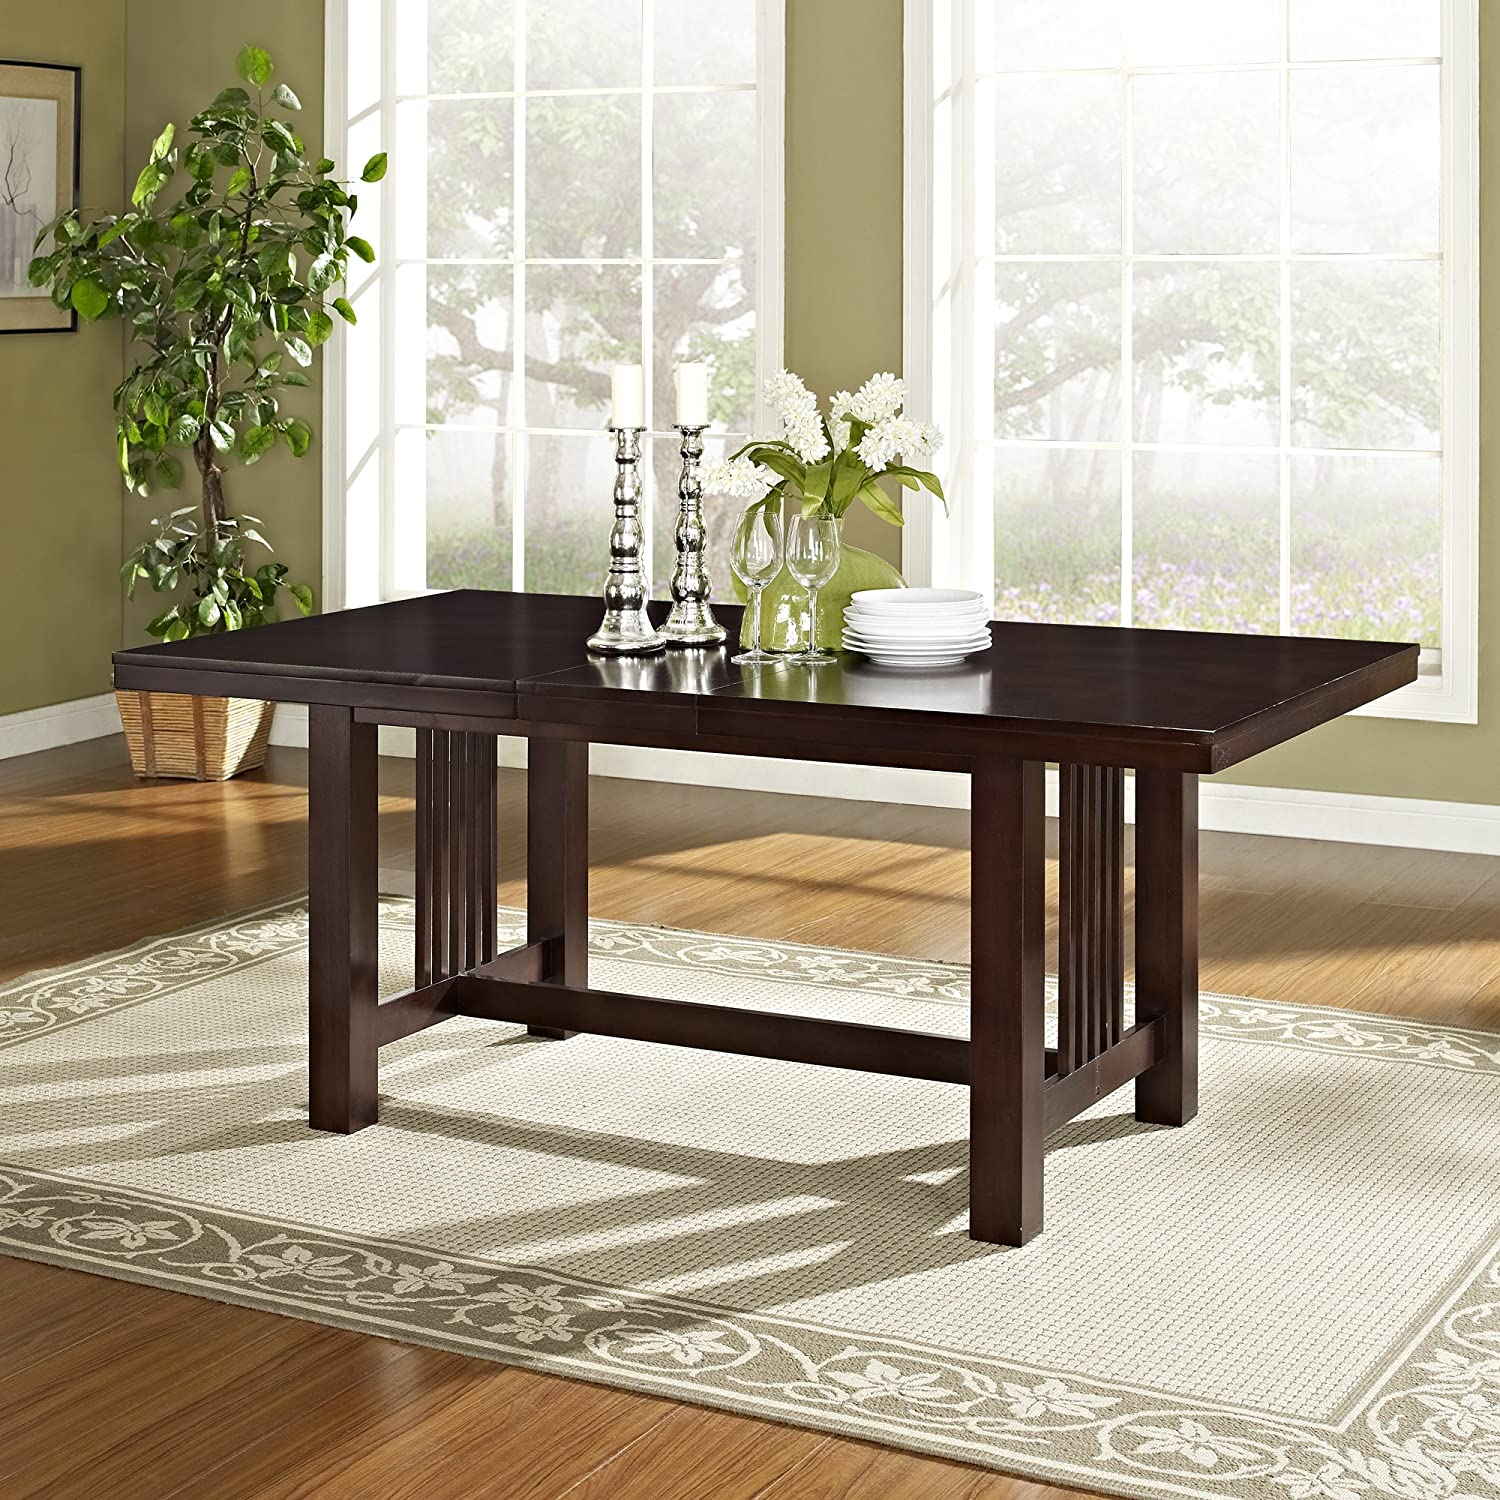 WE Furniture Simple Wood Dining Table, Cappuccino